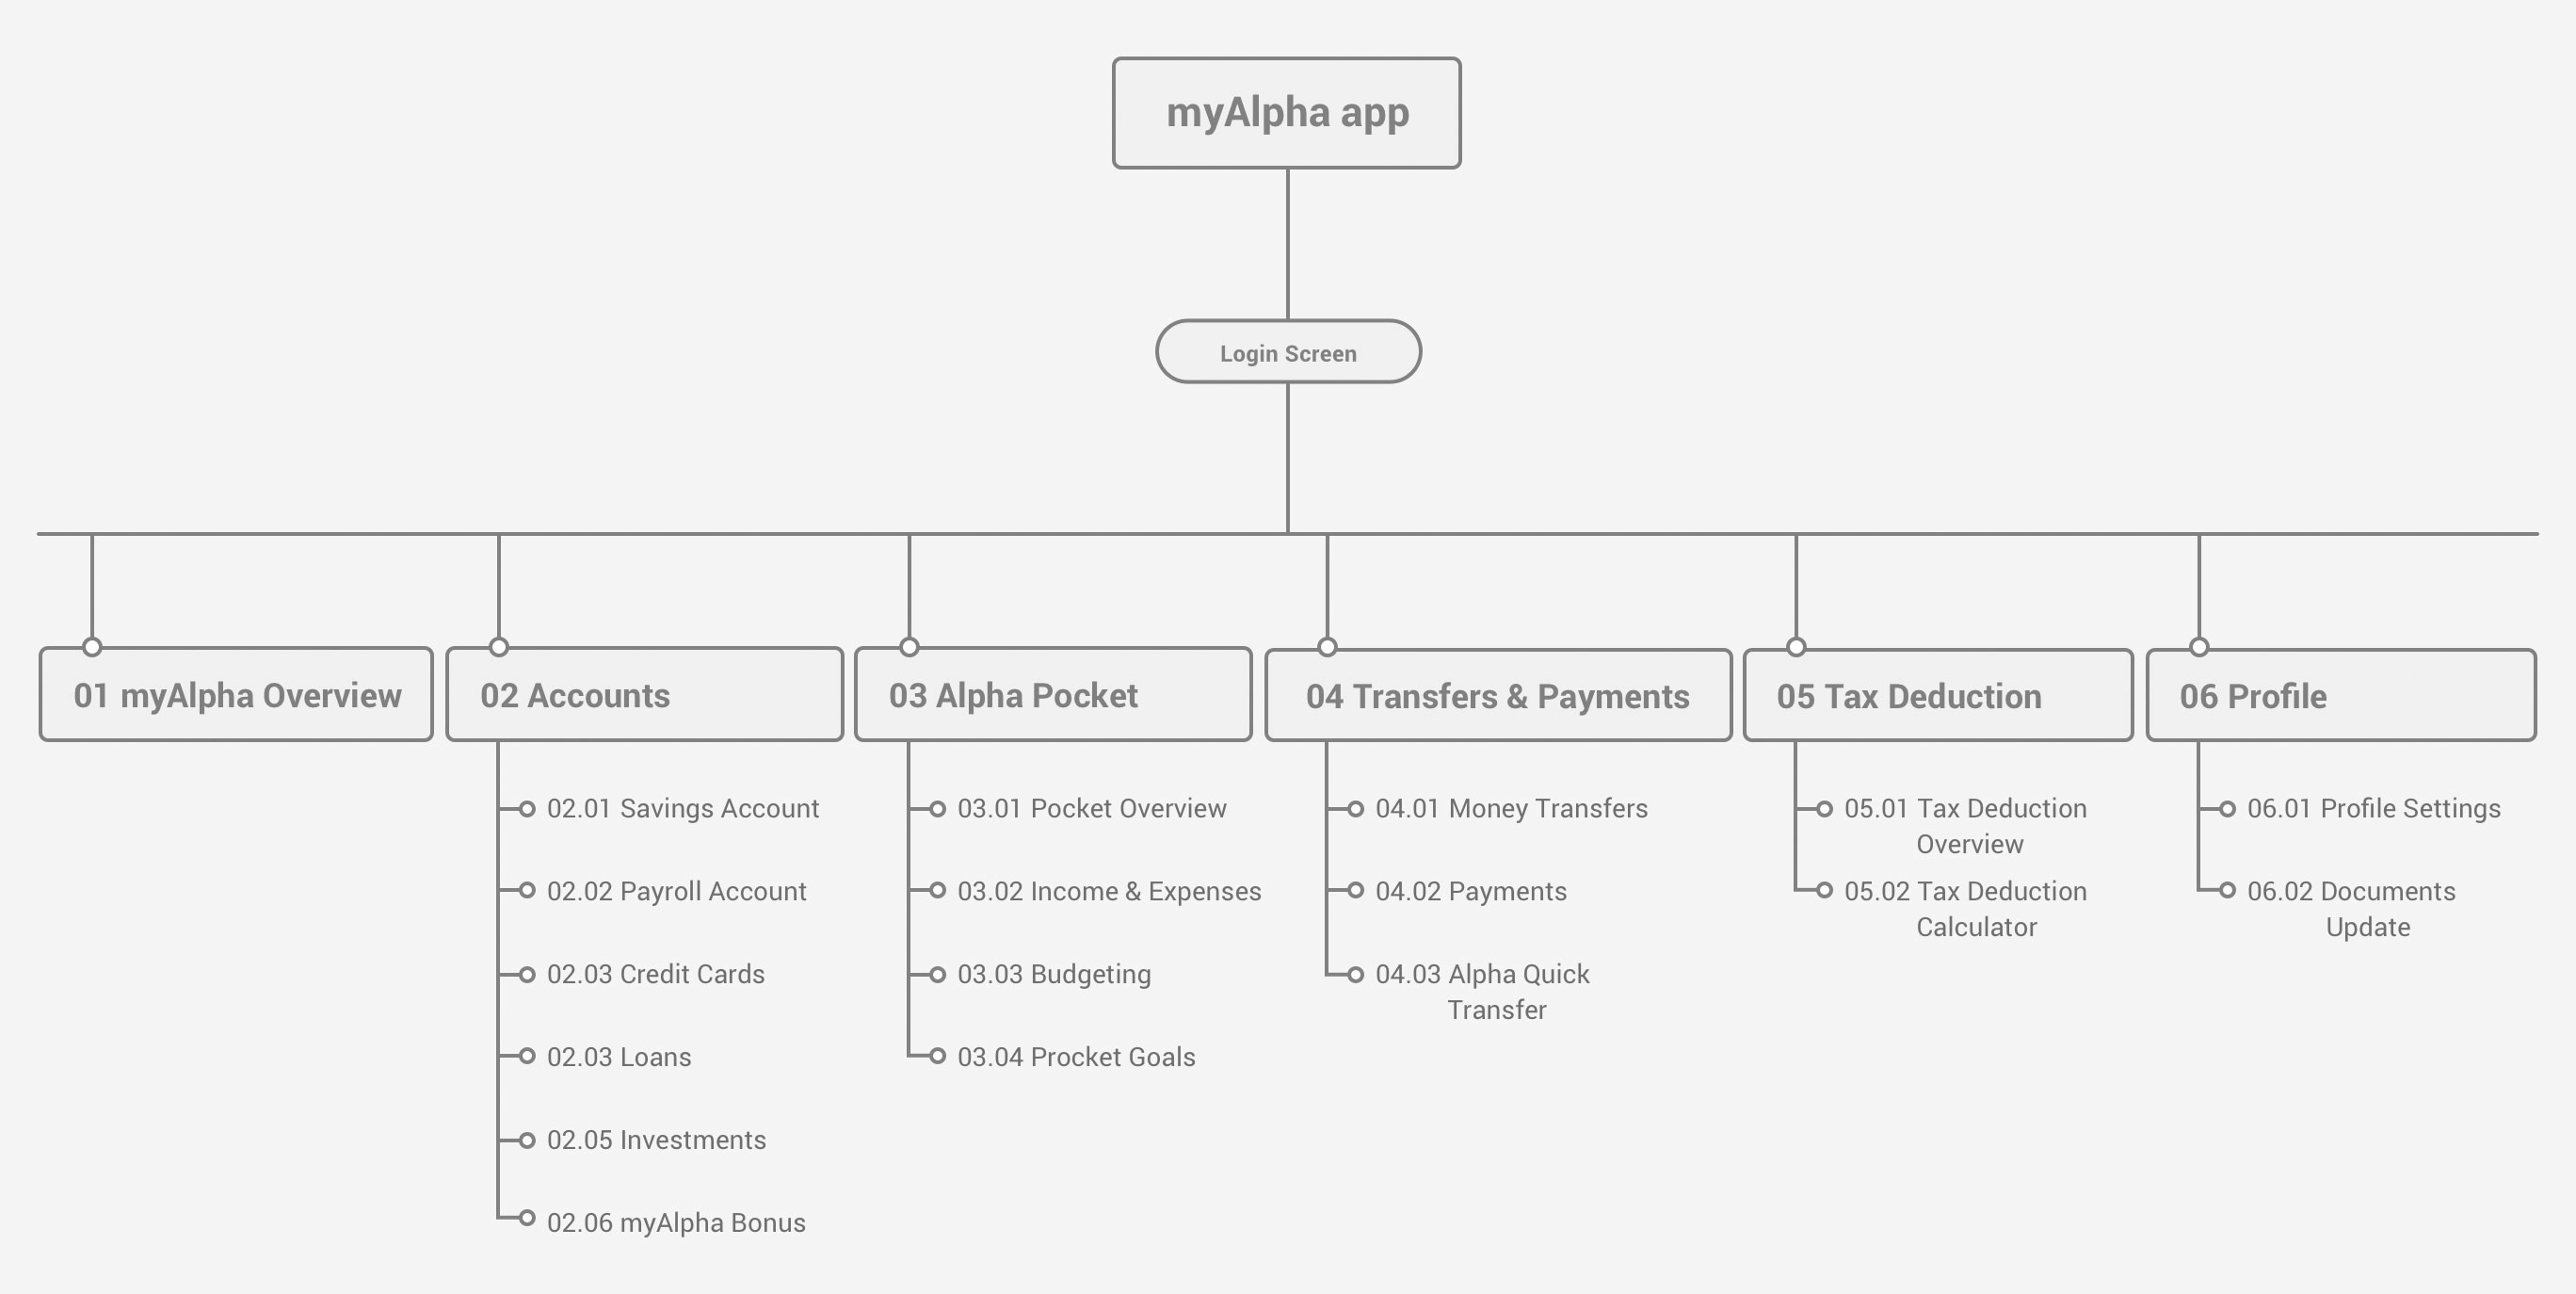 myAlpha Pocket IA diagram